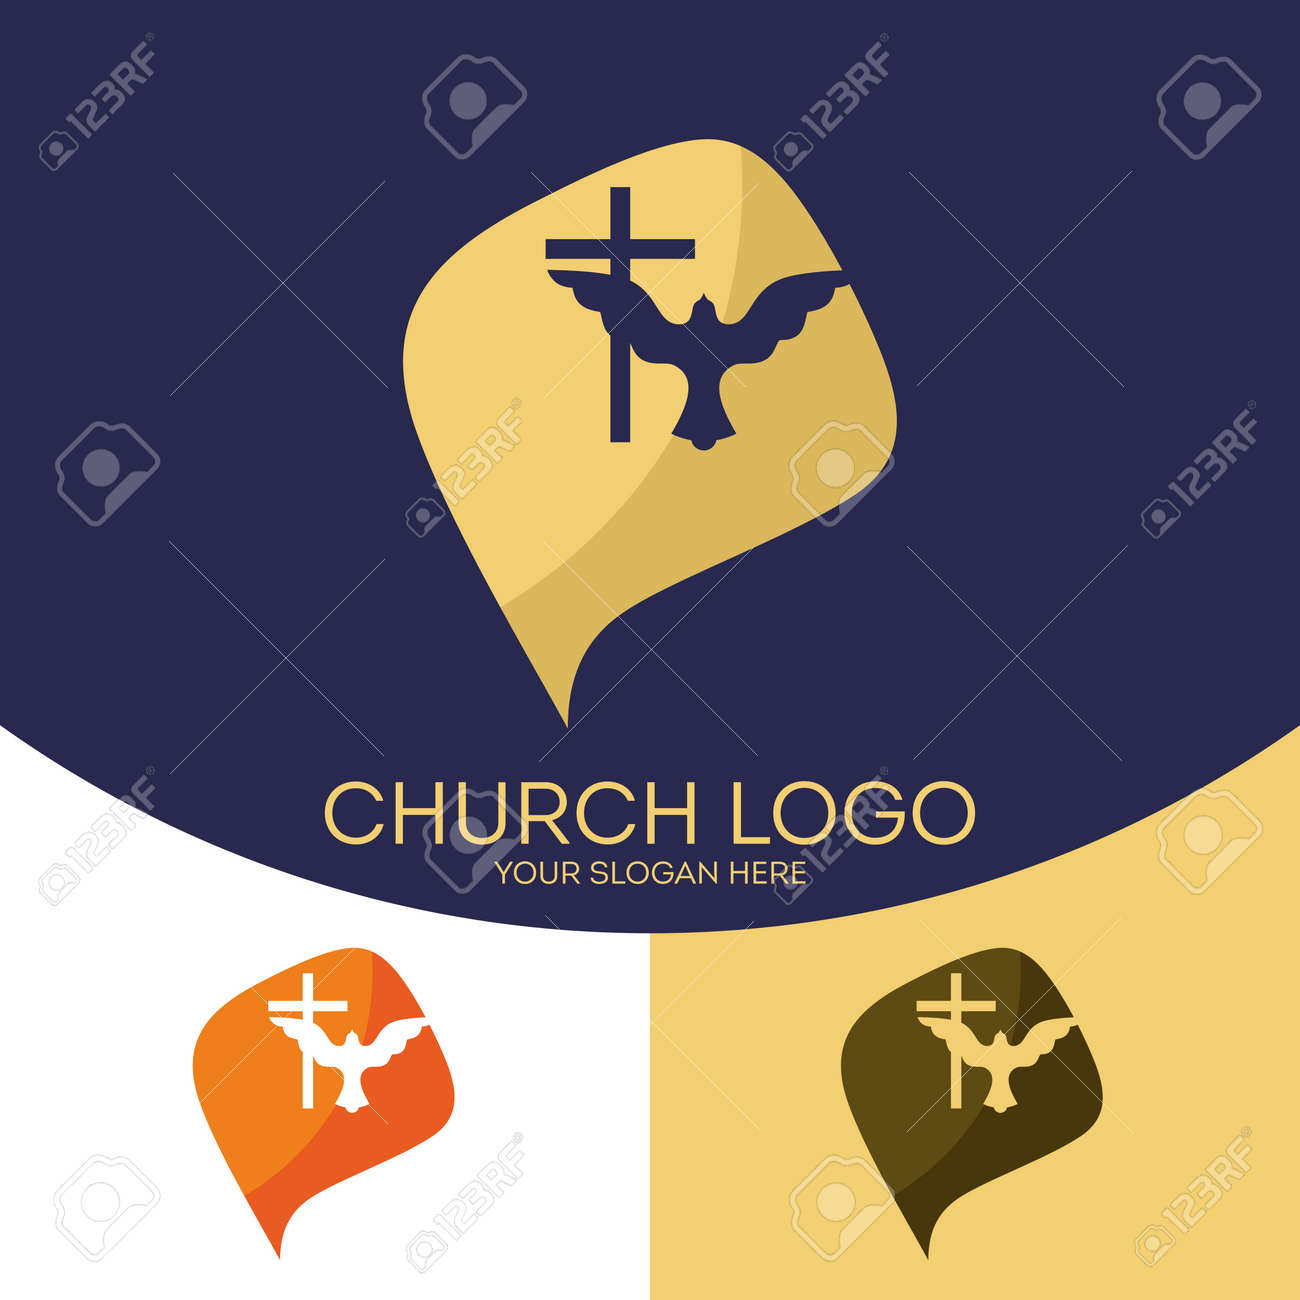 Church Logo Christian Symbols The Cross Of Jesus Christ The